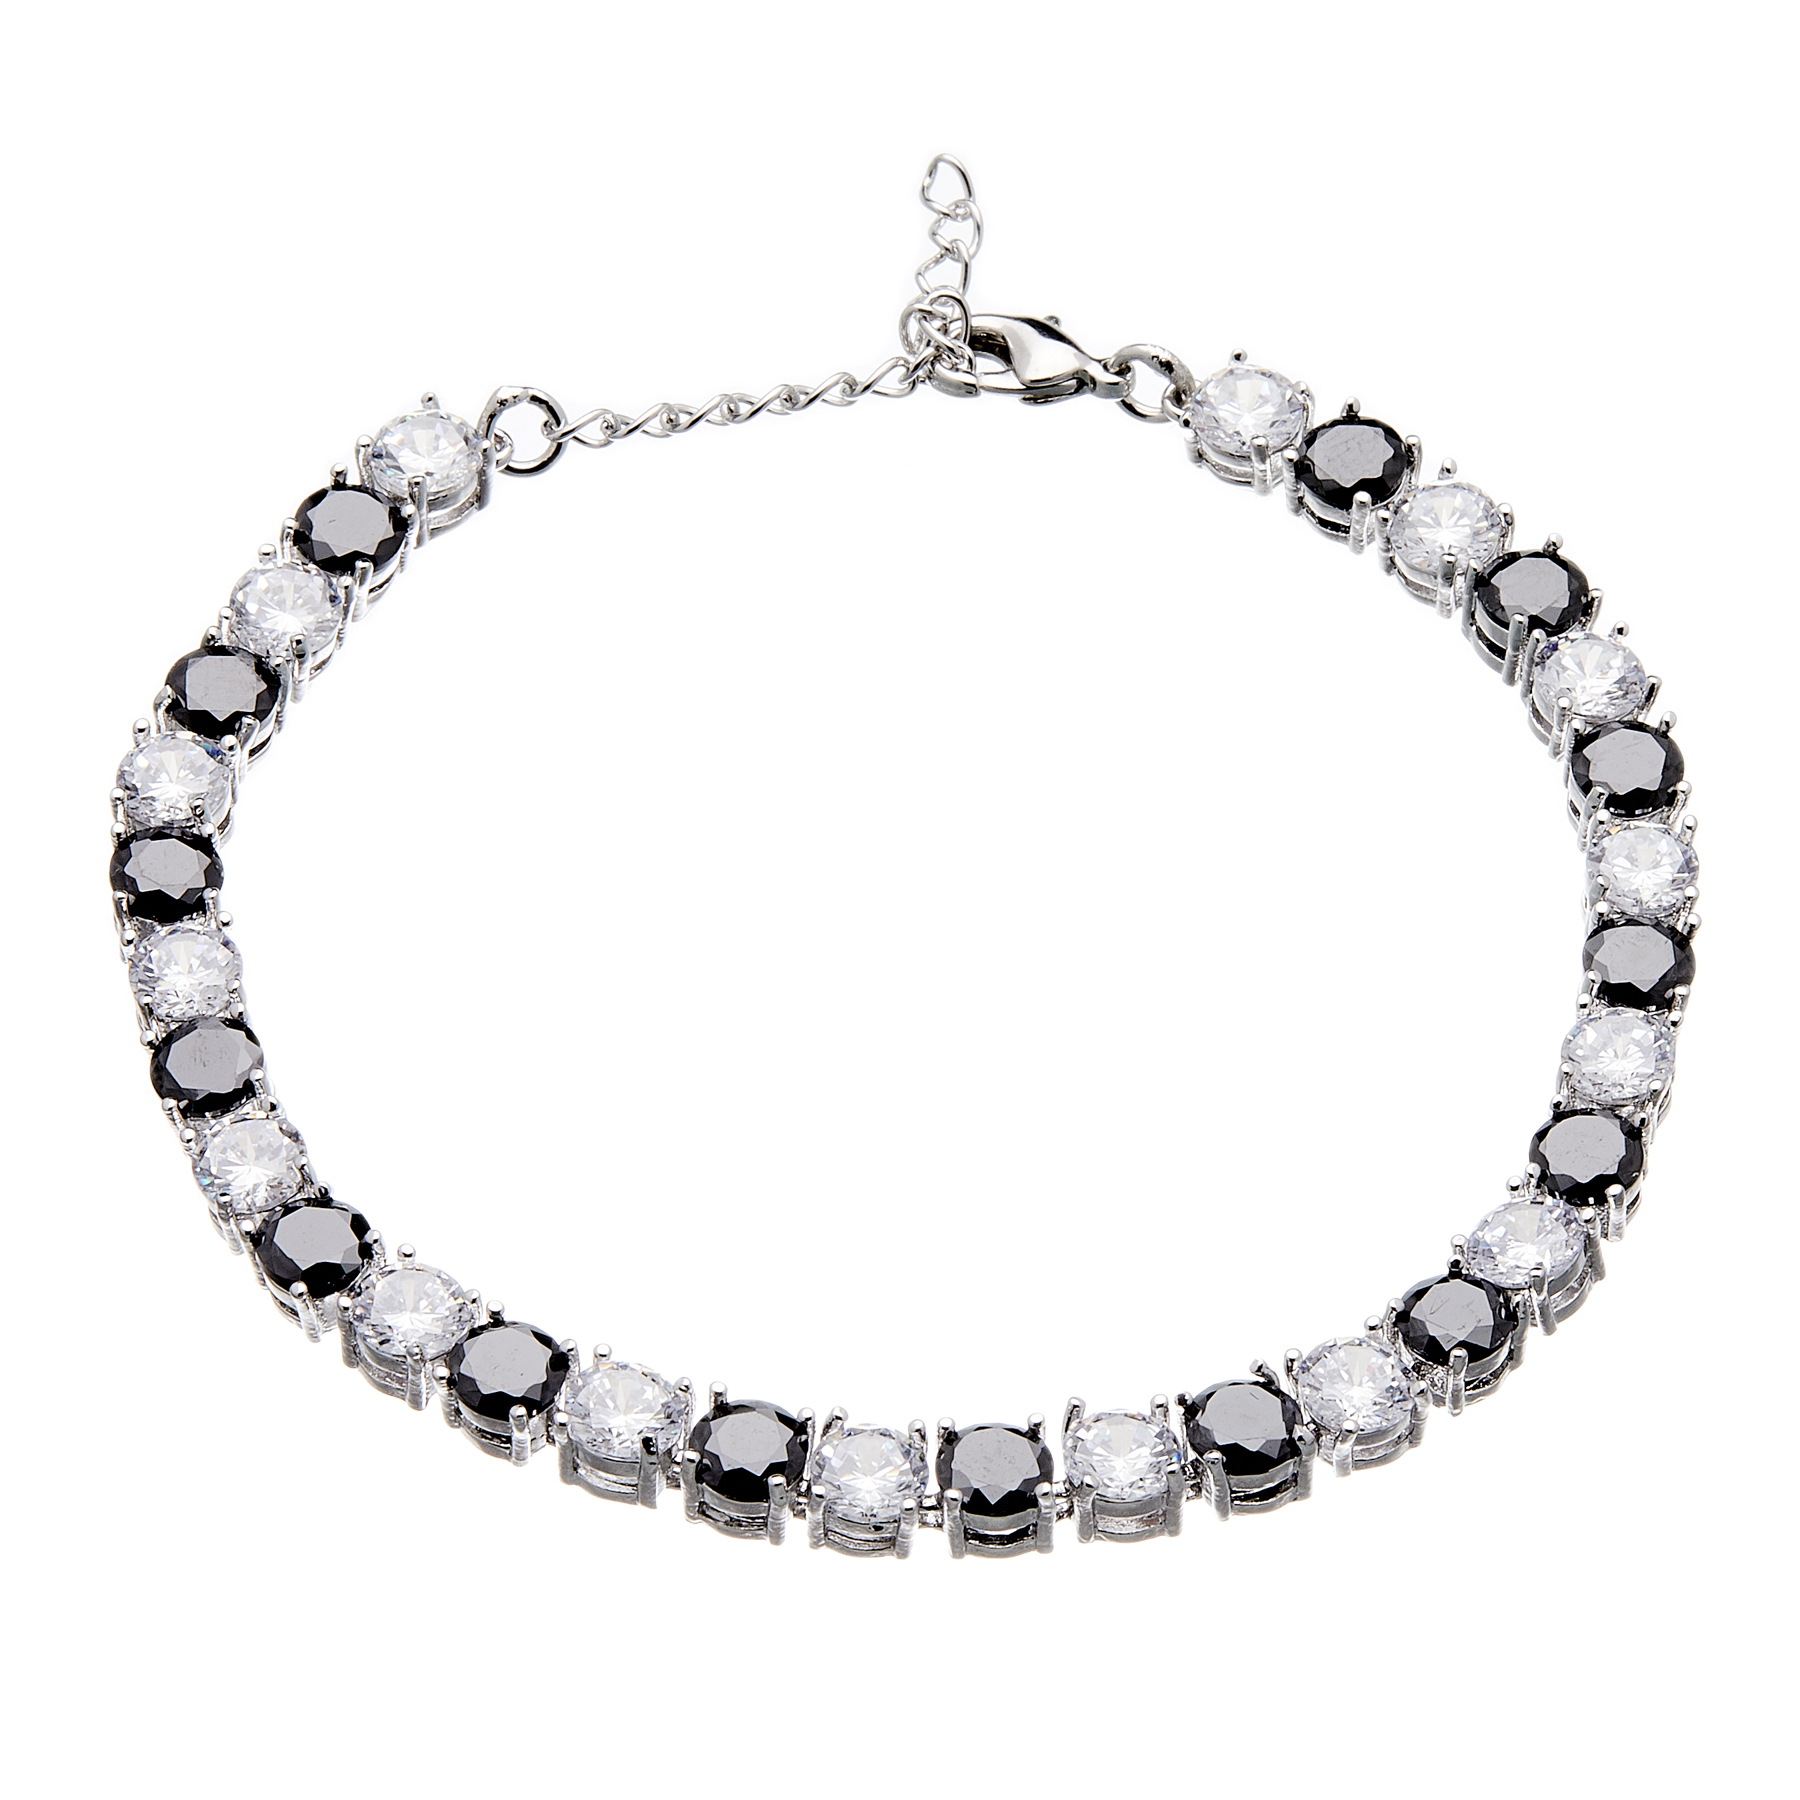 Bracelet - silver with black and clear Cubic Zirconia Stones - Nasha